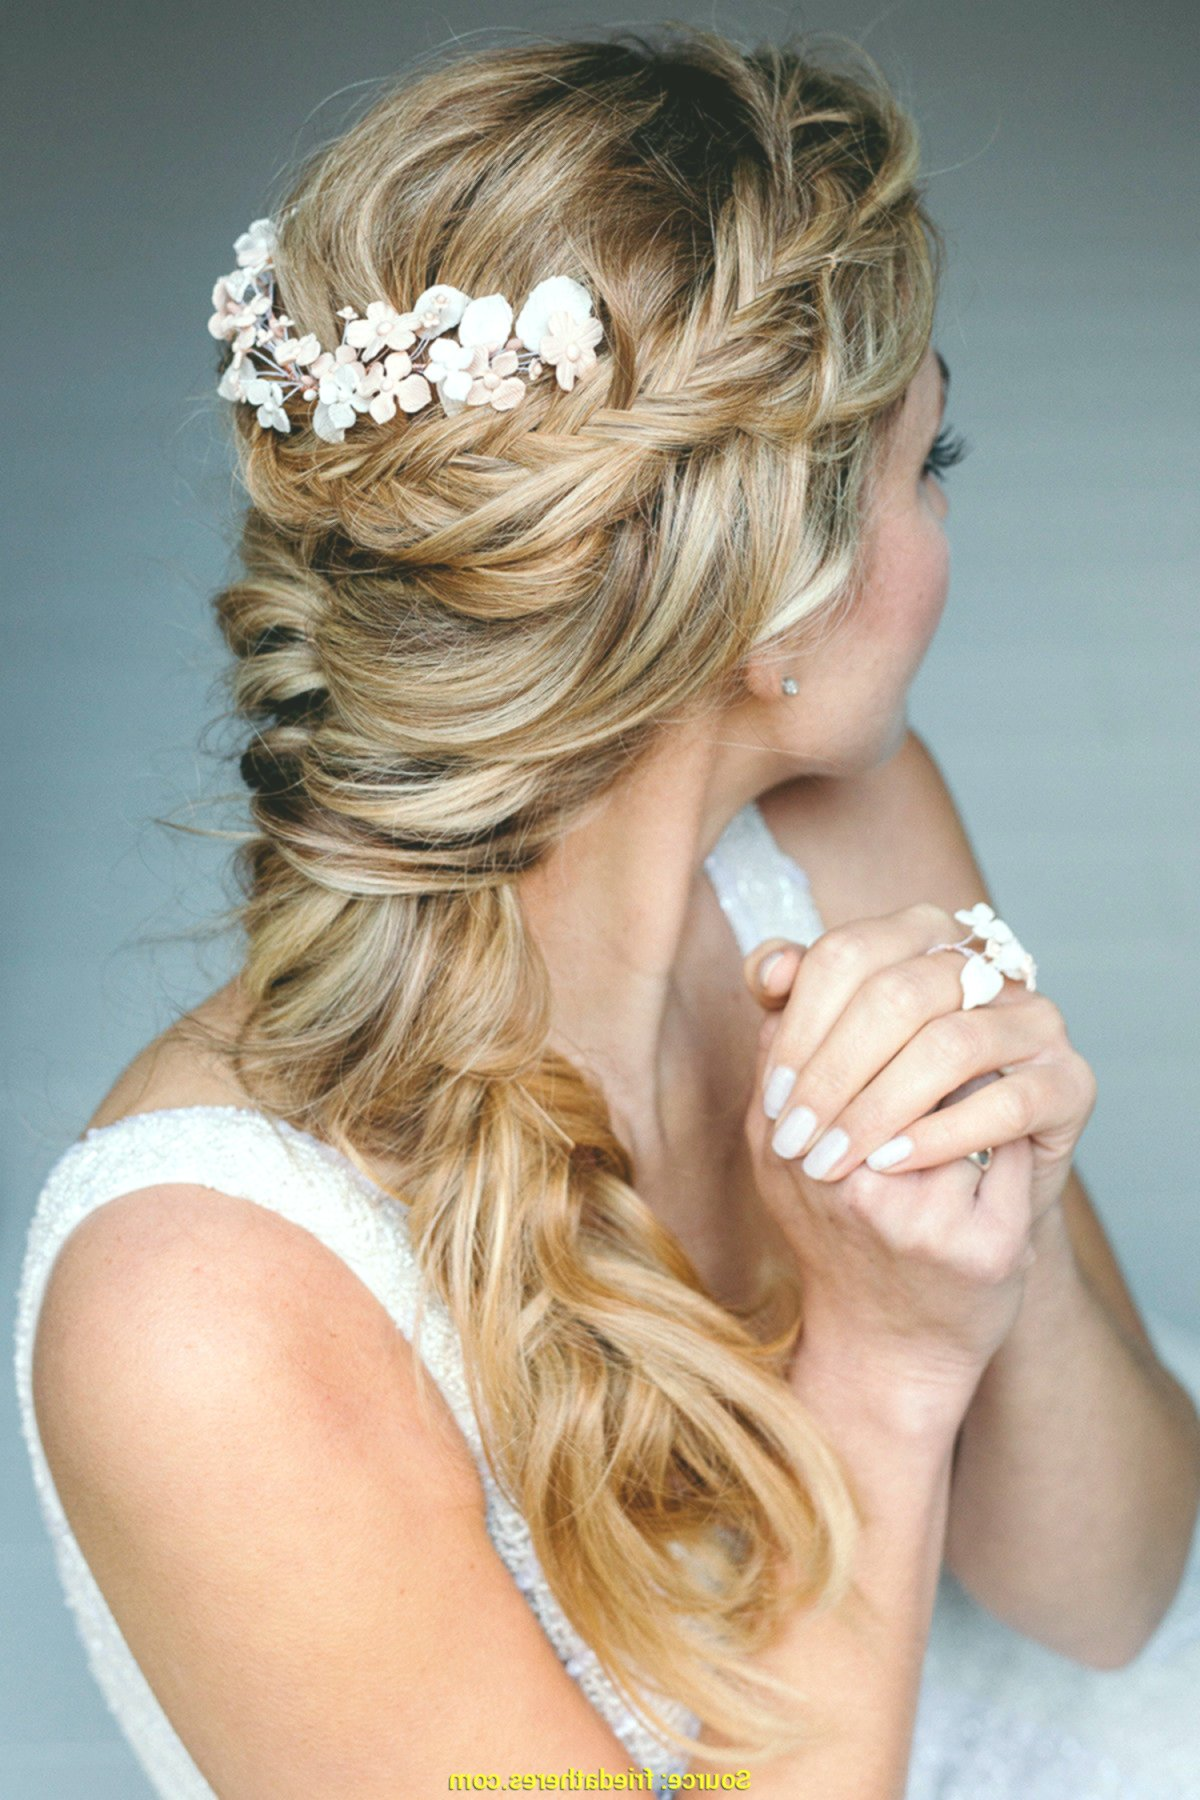 Terribly cool hairstyles for curls Photo Picture Best Of Hairstyles For Curls Layout